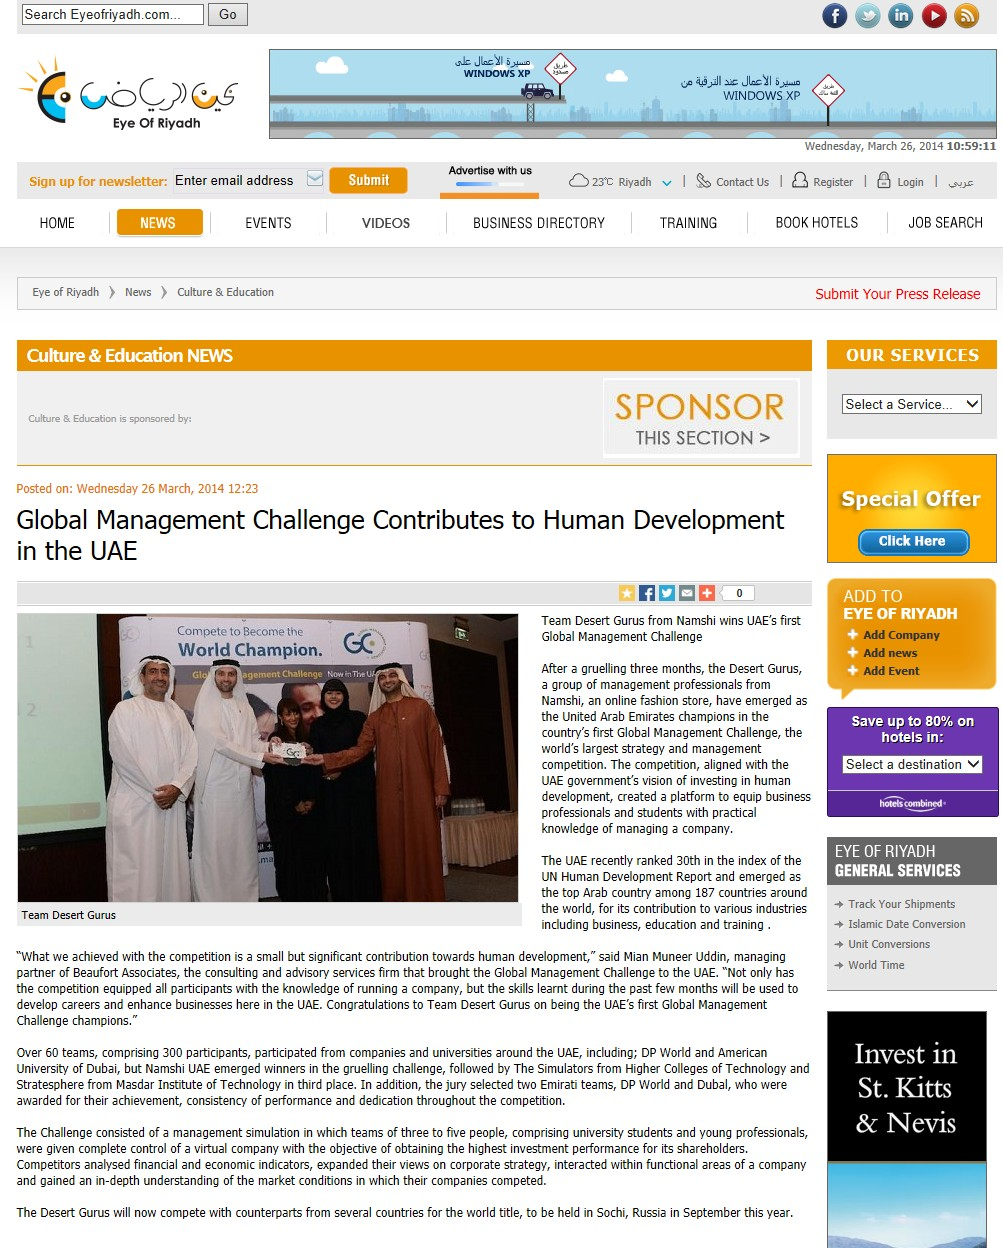 Press Coverage - Global Management Challenge